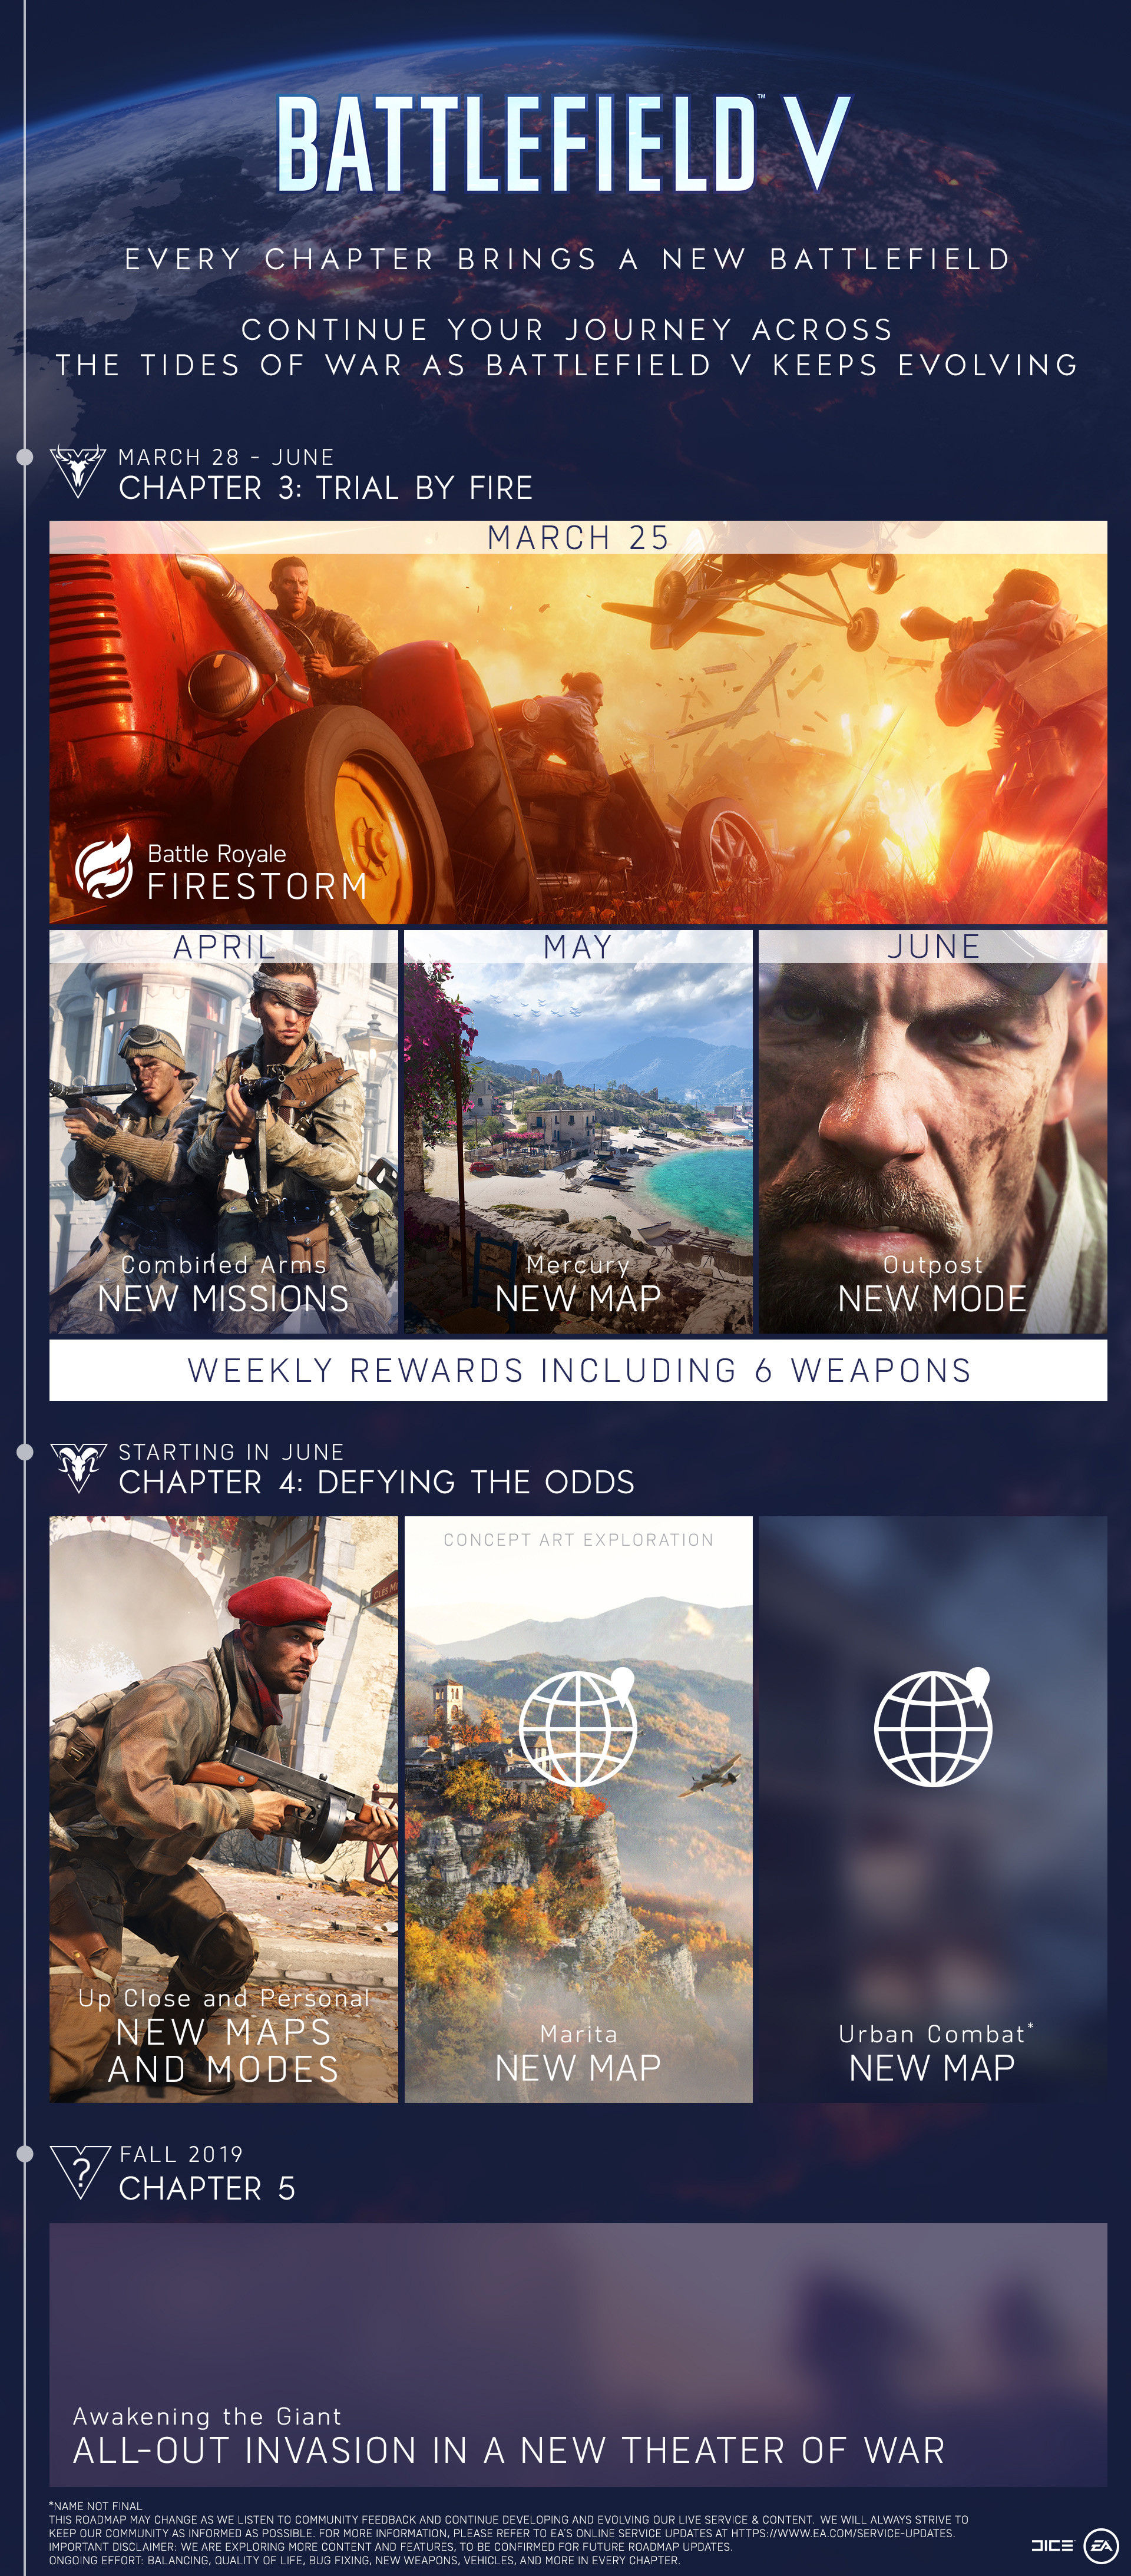 Battlefield 5 2019 roadmap